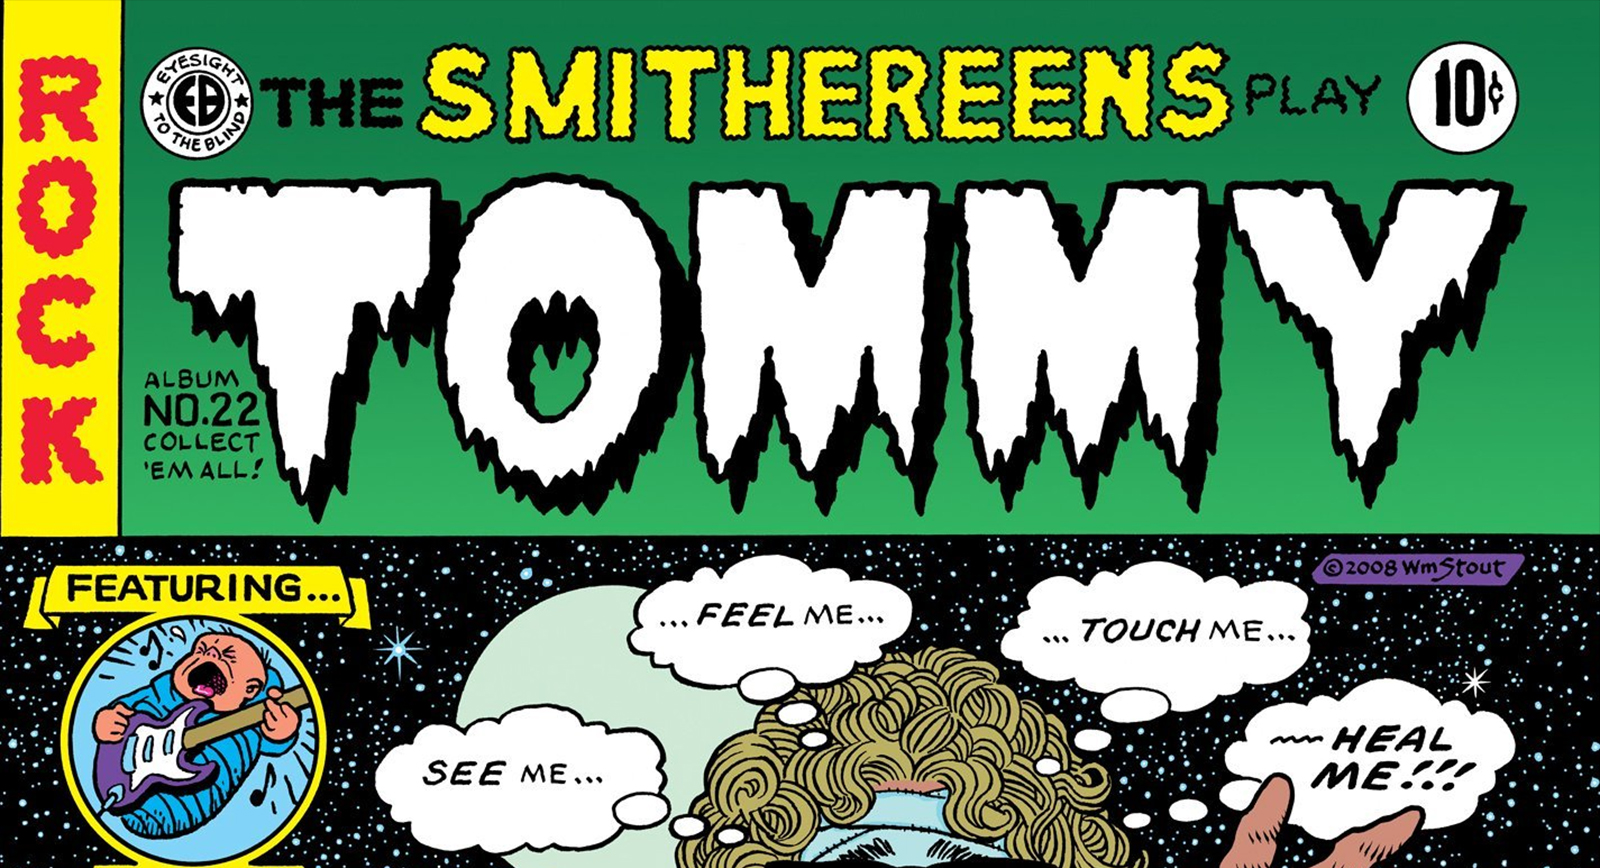 The-Smithereens-Play-Tommy-Tour-2016-Concert-Live-Cities-Dates-Tickets